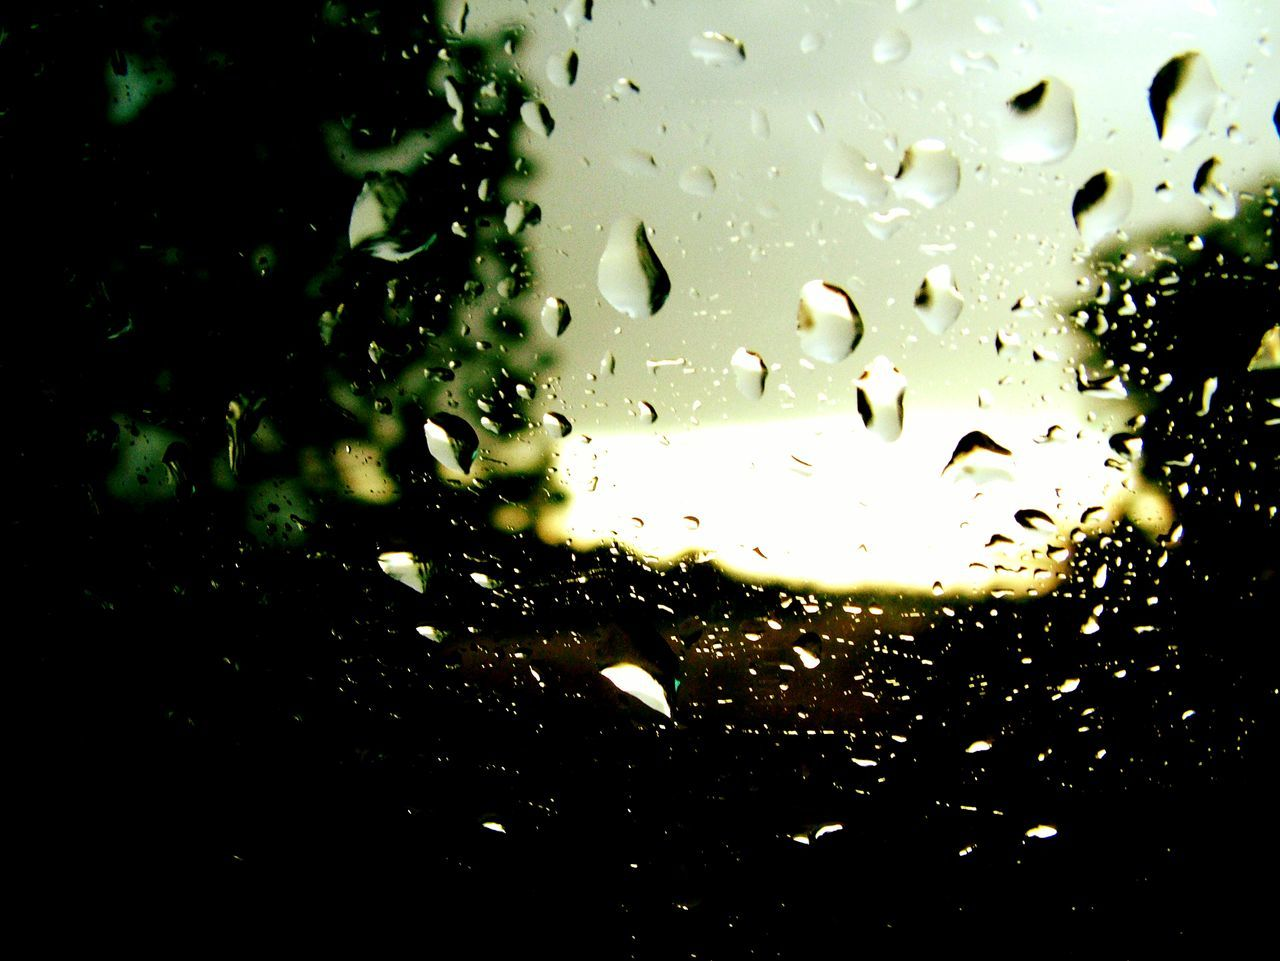 drop, wet, water, glass - material, rain, window, transparent, no people, close-up, indoors, nature, vehicle interior, raindrop, car, rainy season, focus on foreground, motor vehicle, glass